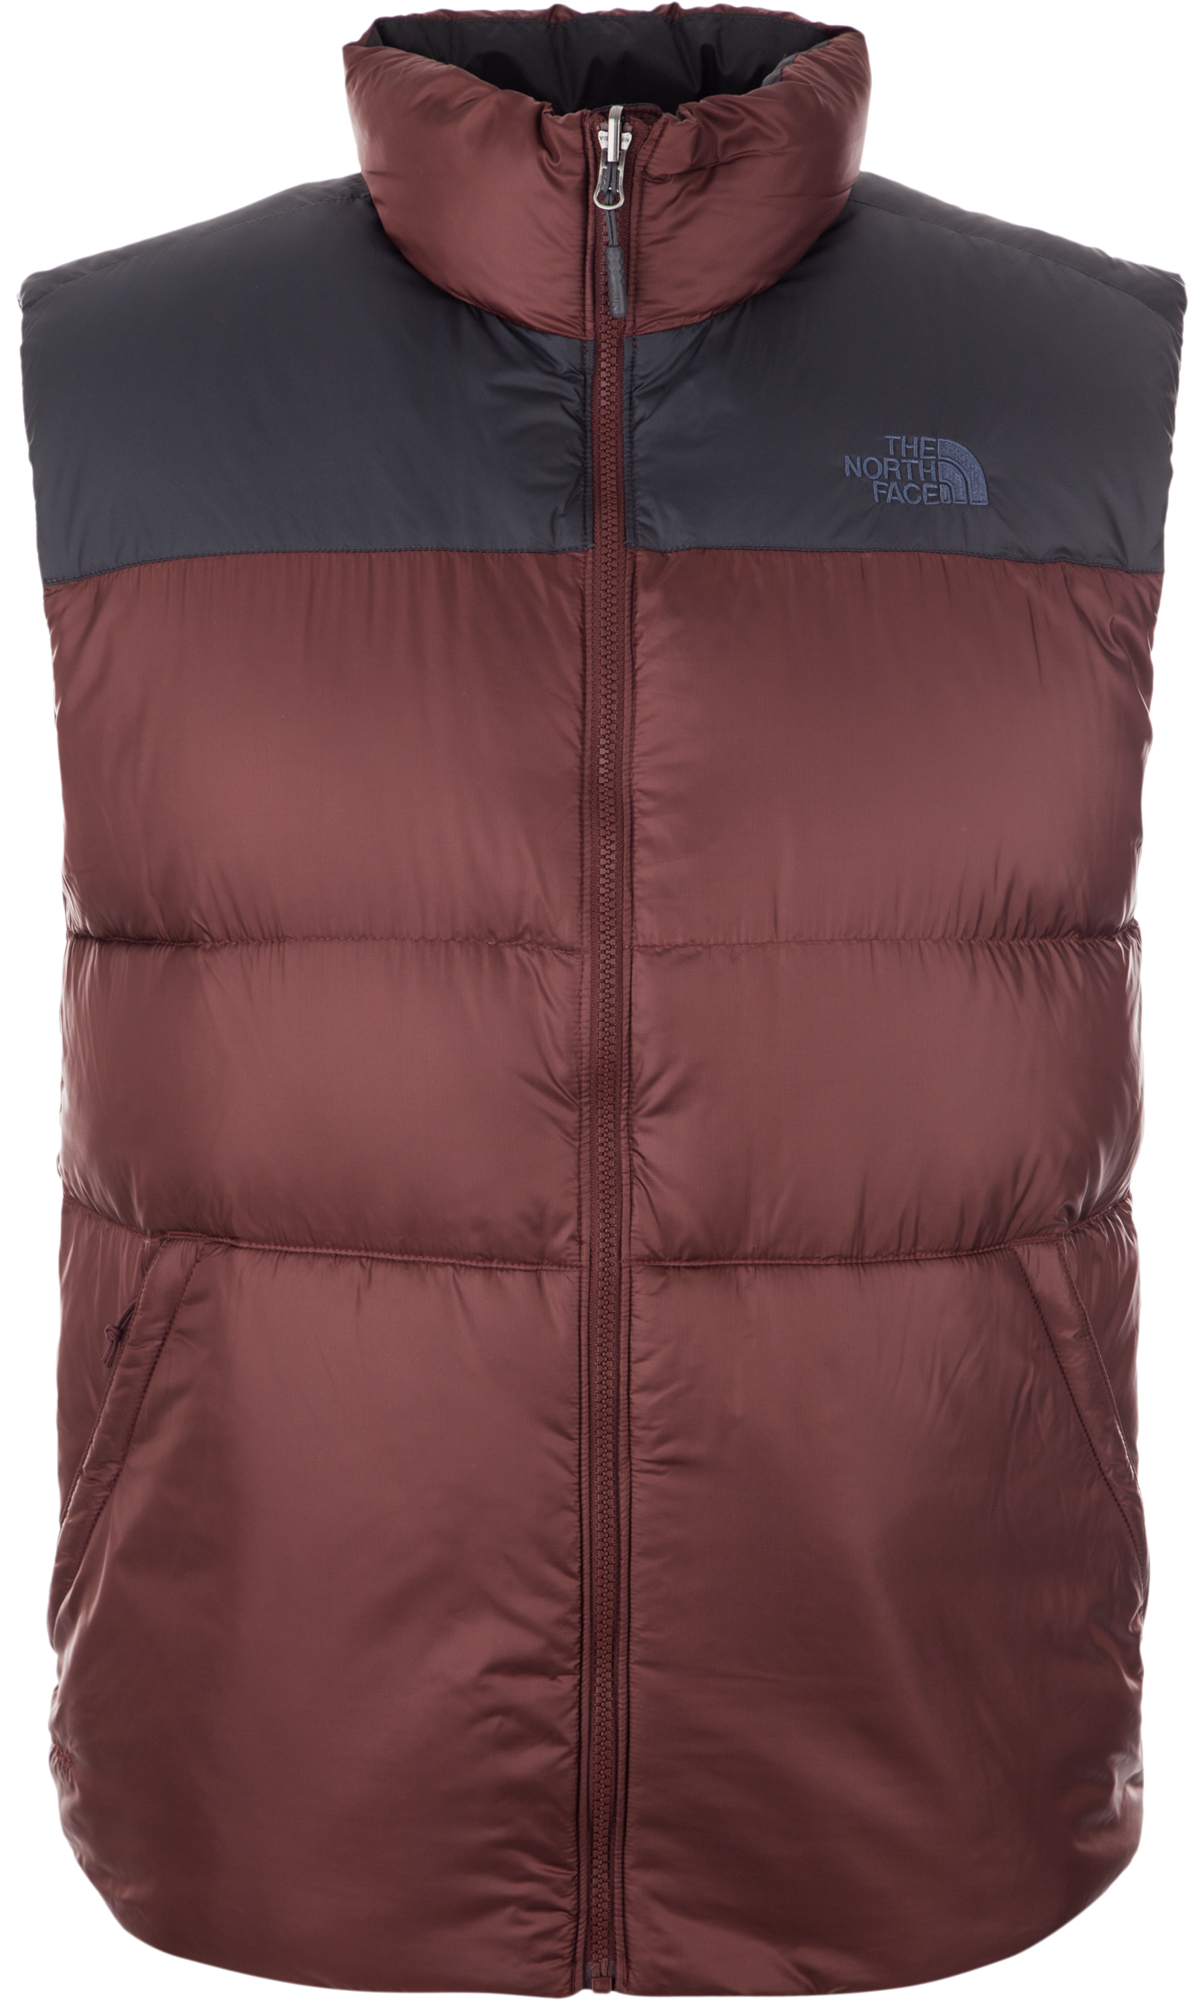 The North Face Жилет пуховой мужской The North Face Nuptse III Vest